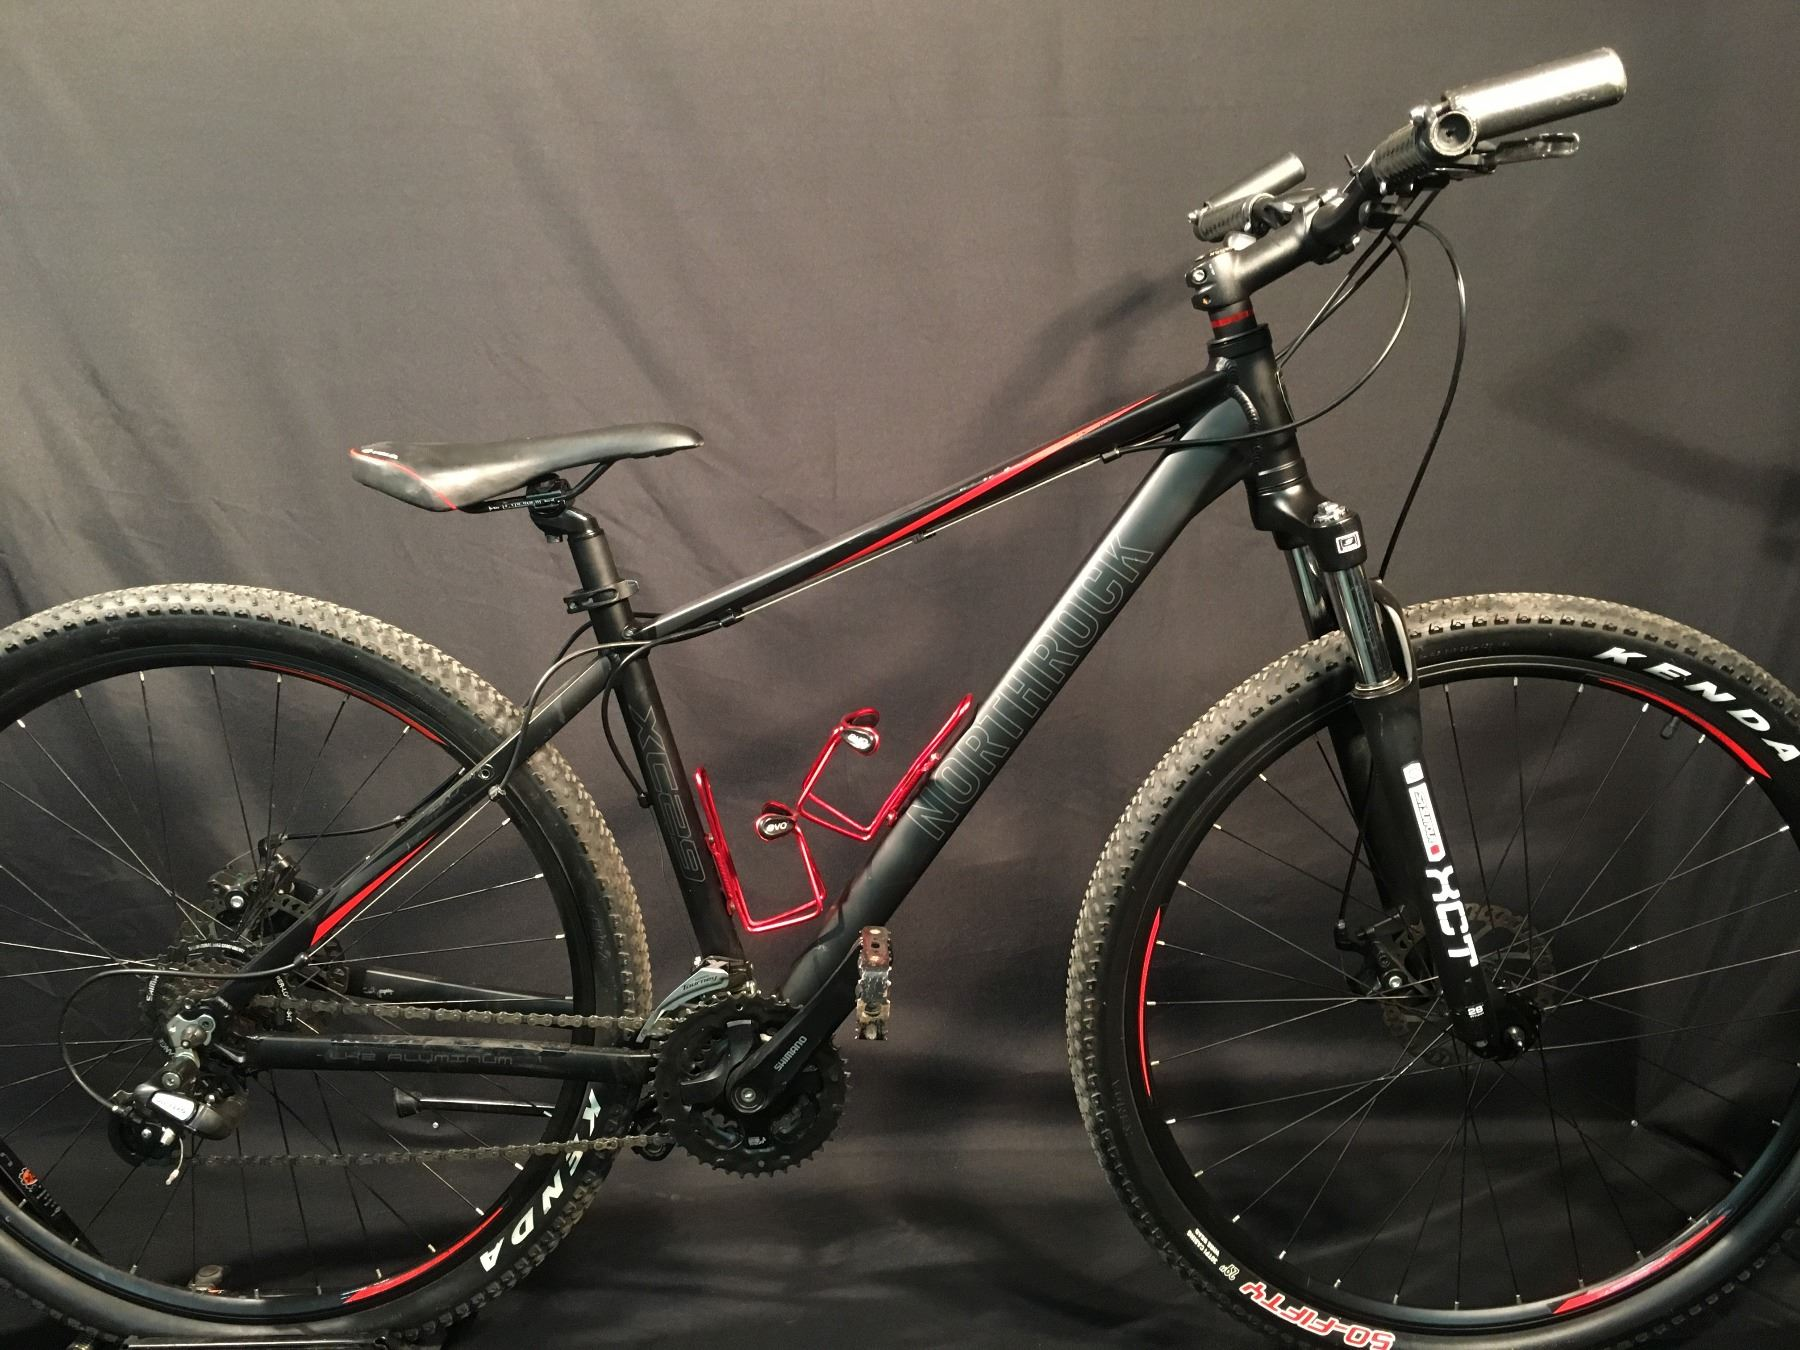 Black Northrock Xc29 21 Speed Front Suspension Mountain Bike With